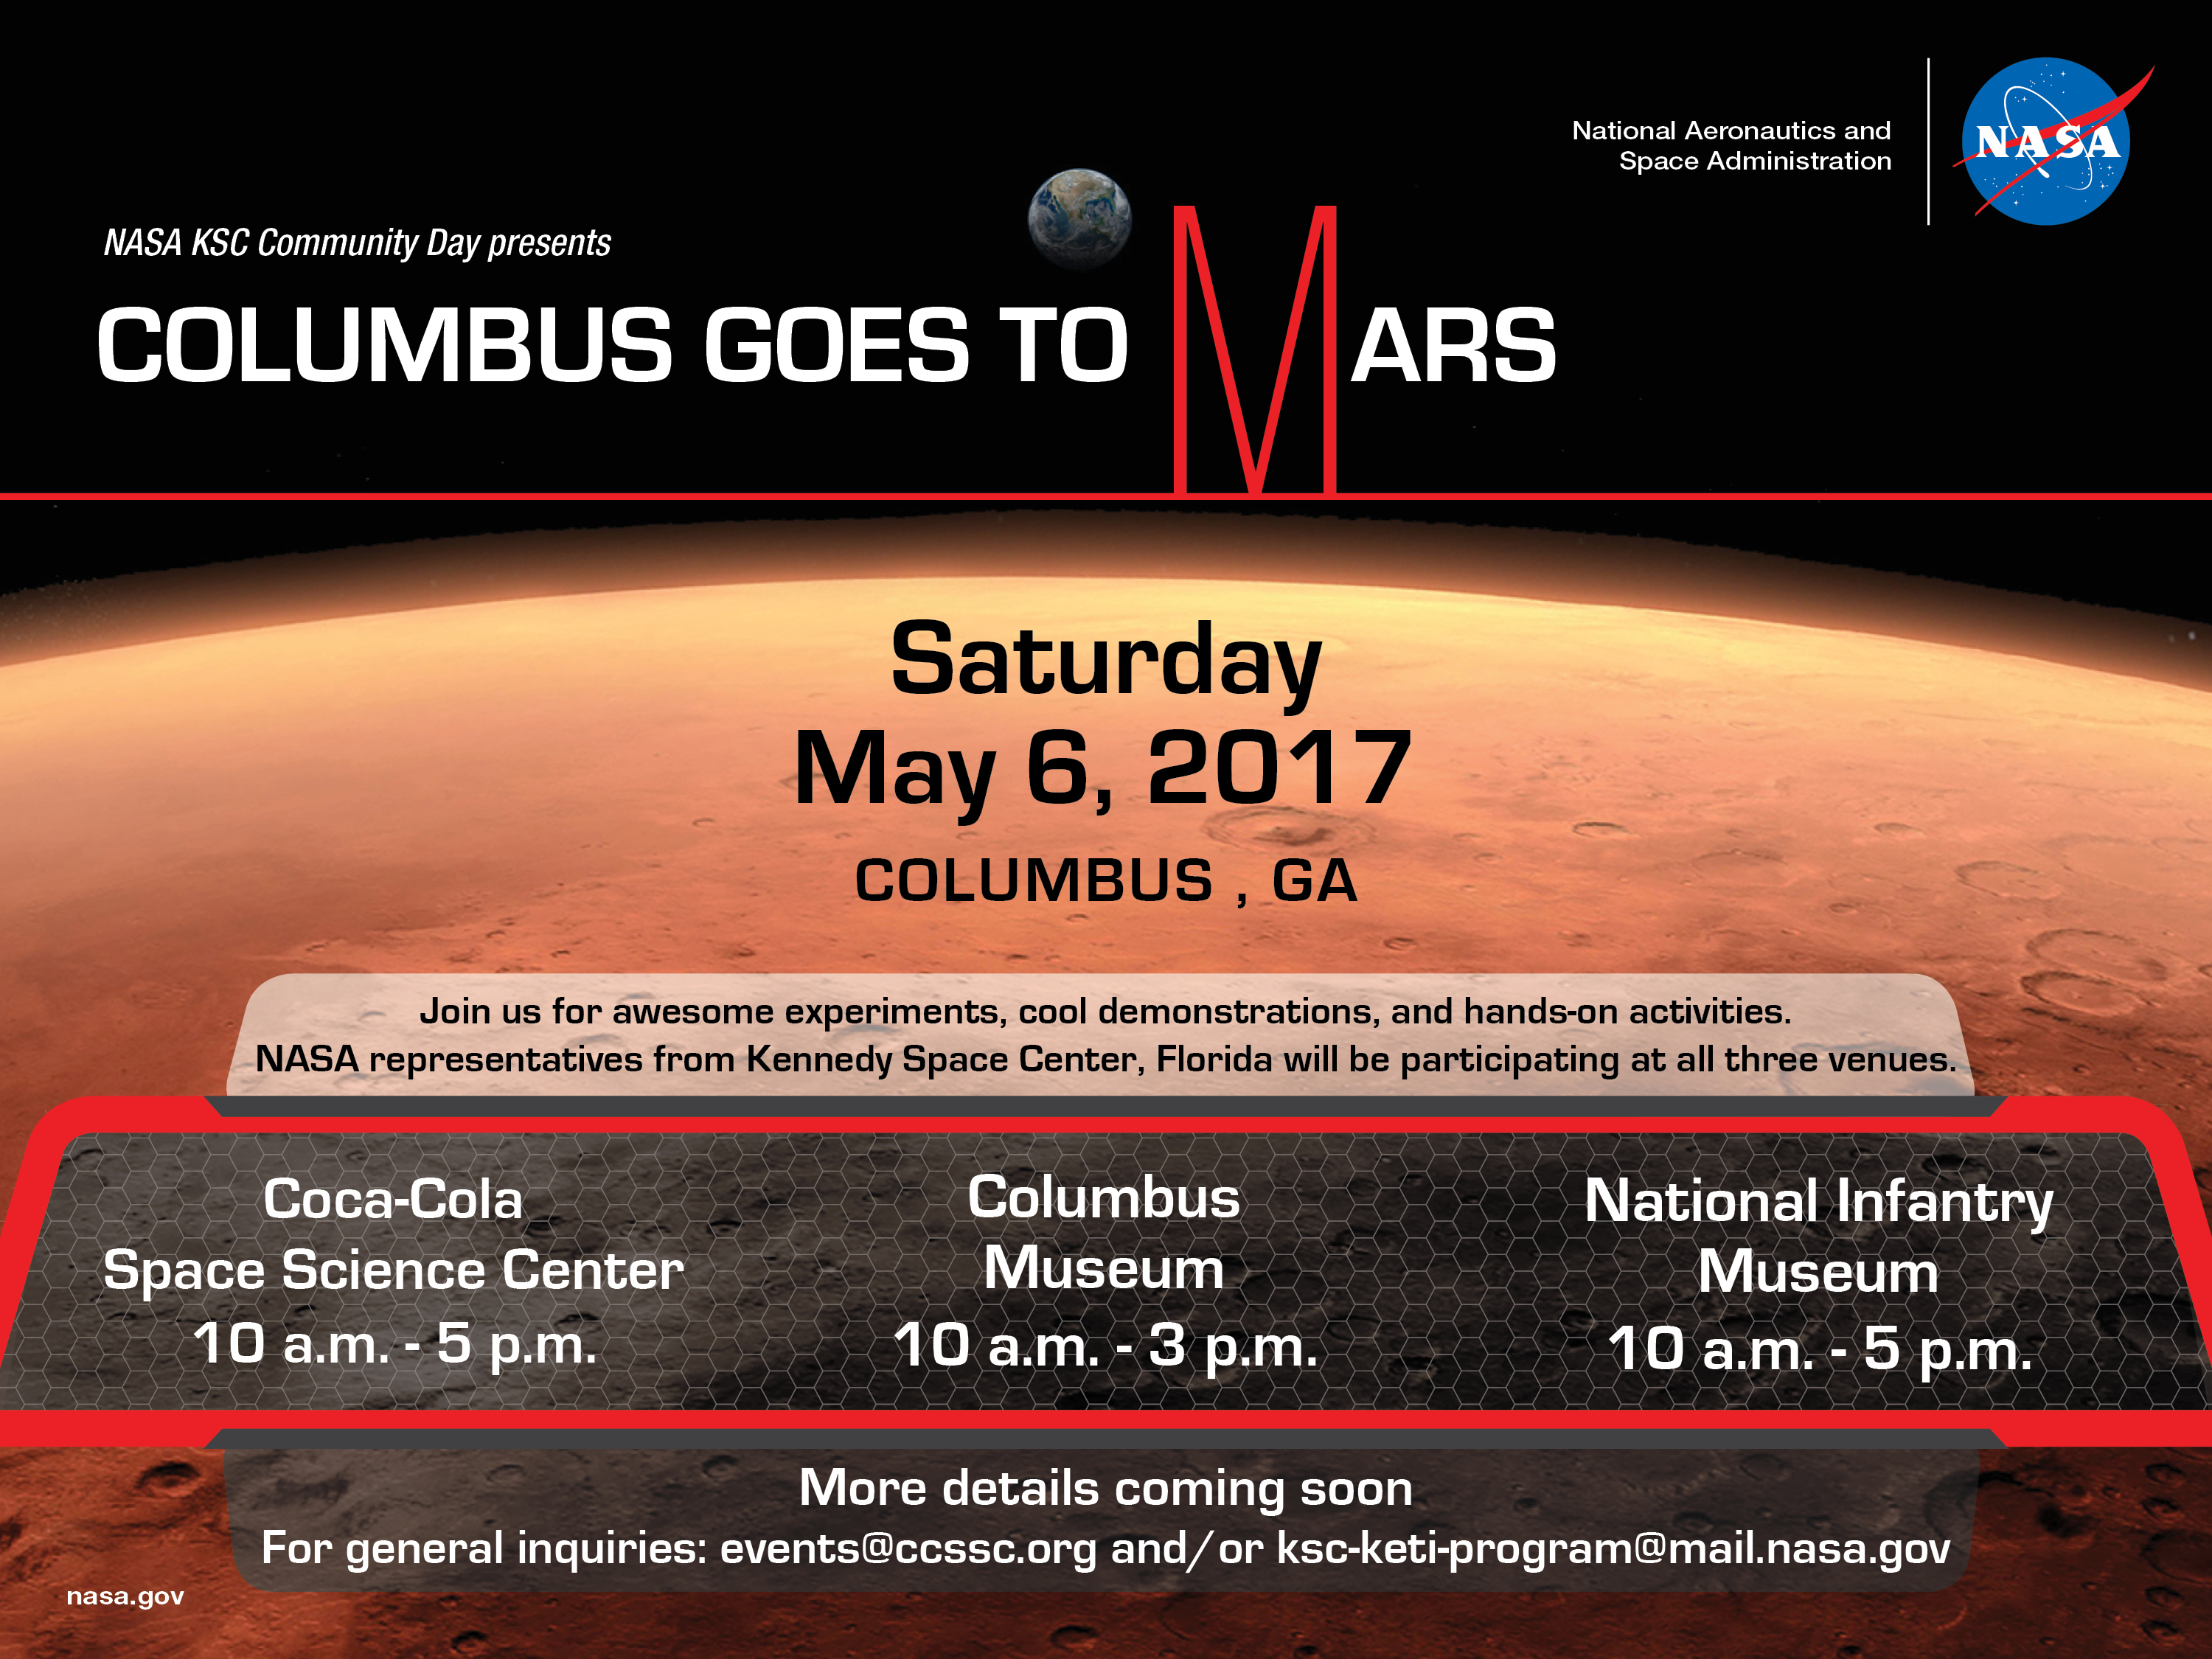 Mars clipart science center Mars Columbus to in GA